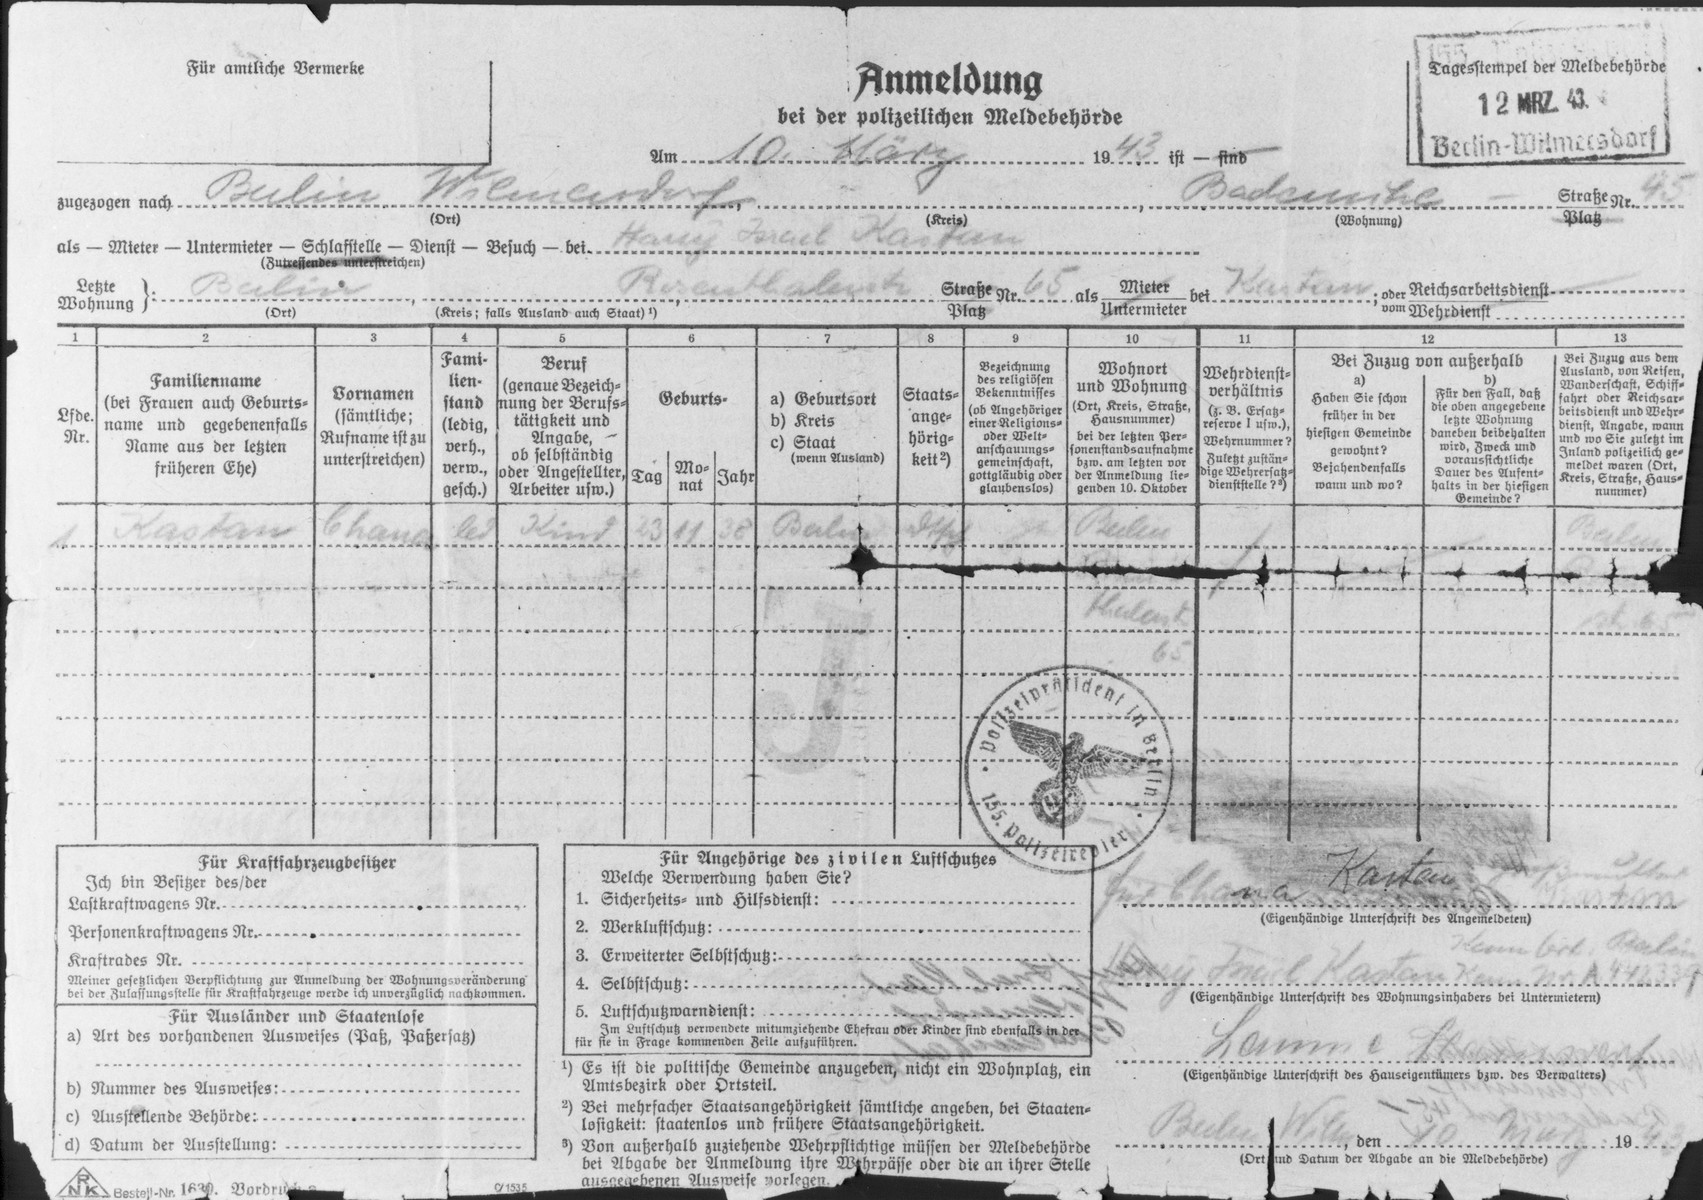 Police registration form issued by the Police Registration Authority and filled out on March 10, 1943 for the child, Hannah Kastan (b. November 23, 1938), the daughter of Harry Israel Kastan, residing in Berlin-Wilmersdorf.